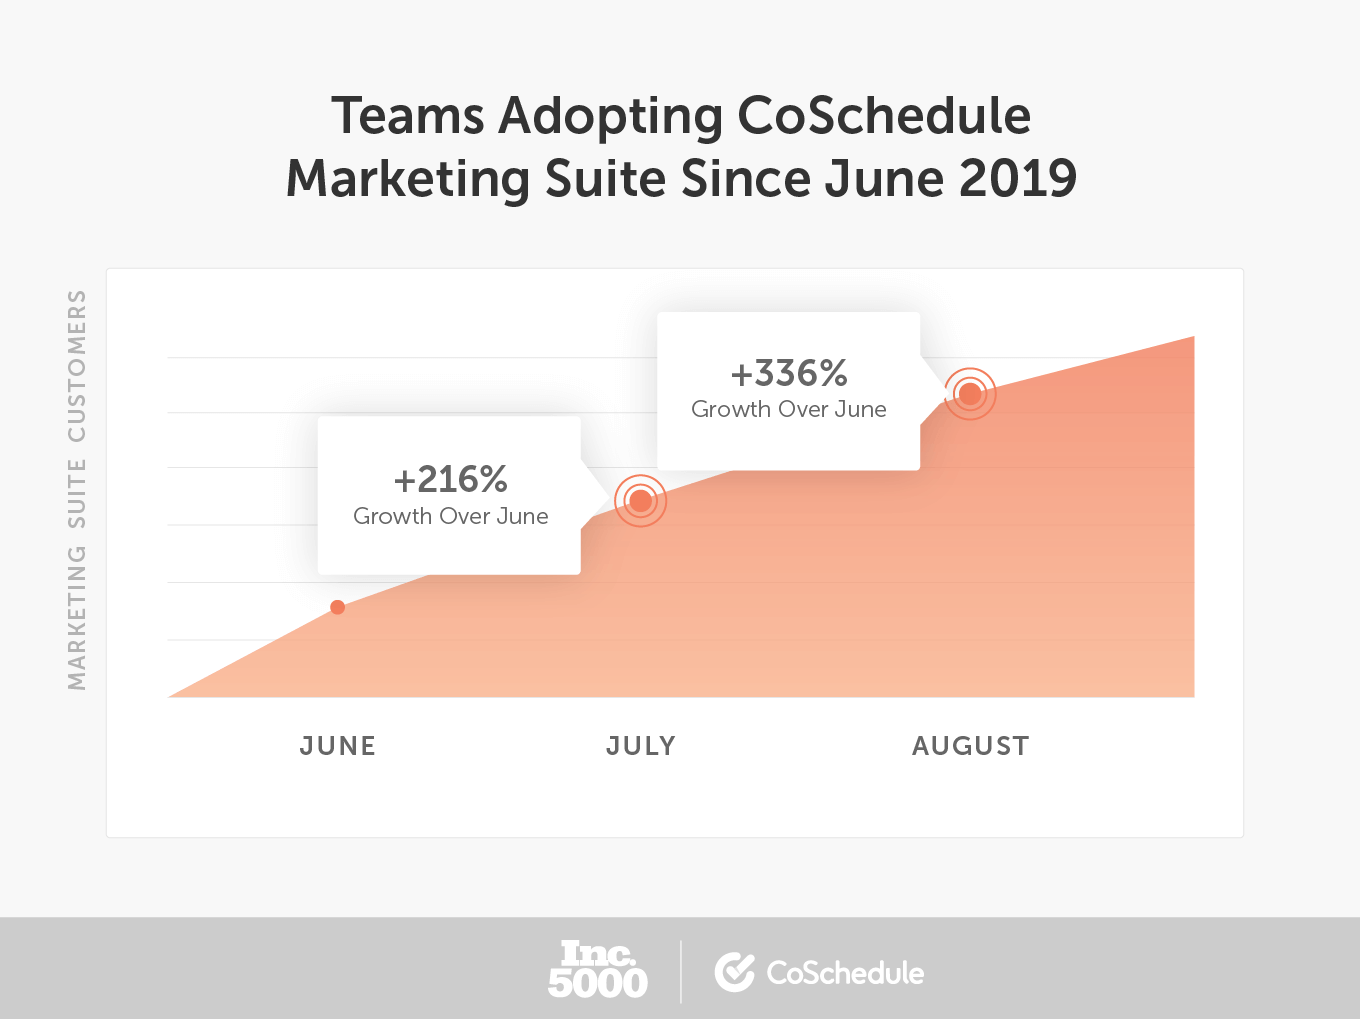 Teams adopting CoSchedule Marketing Suite since June 2019